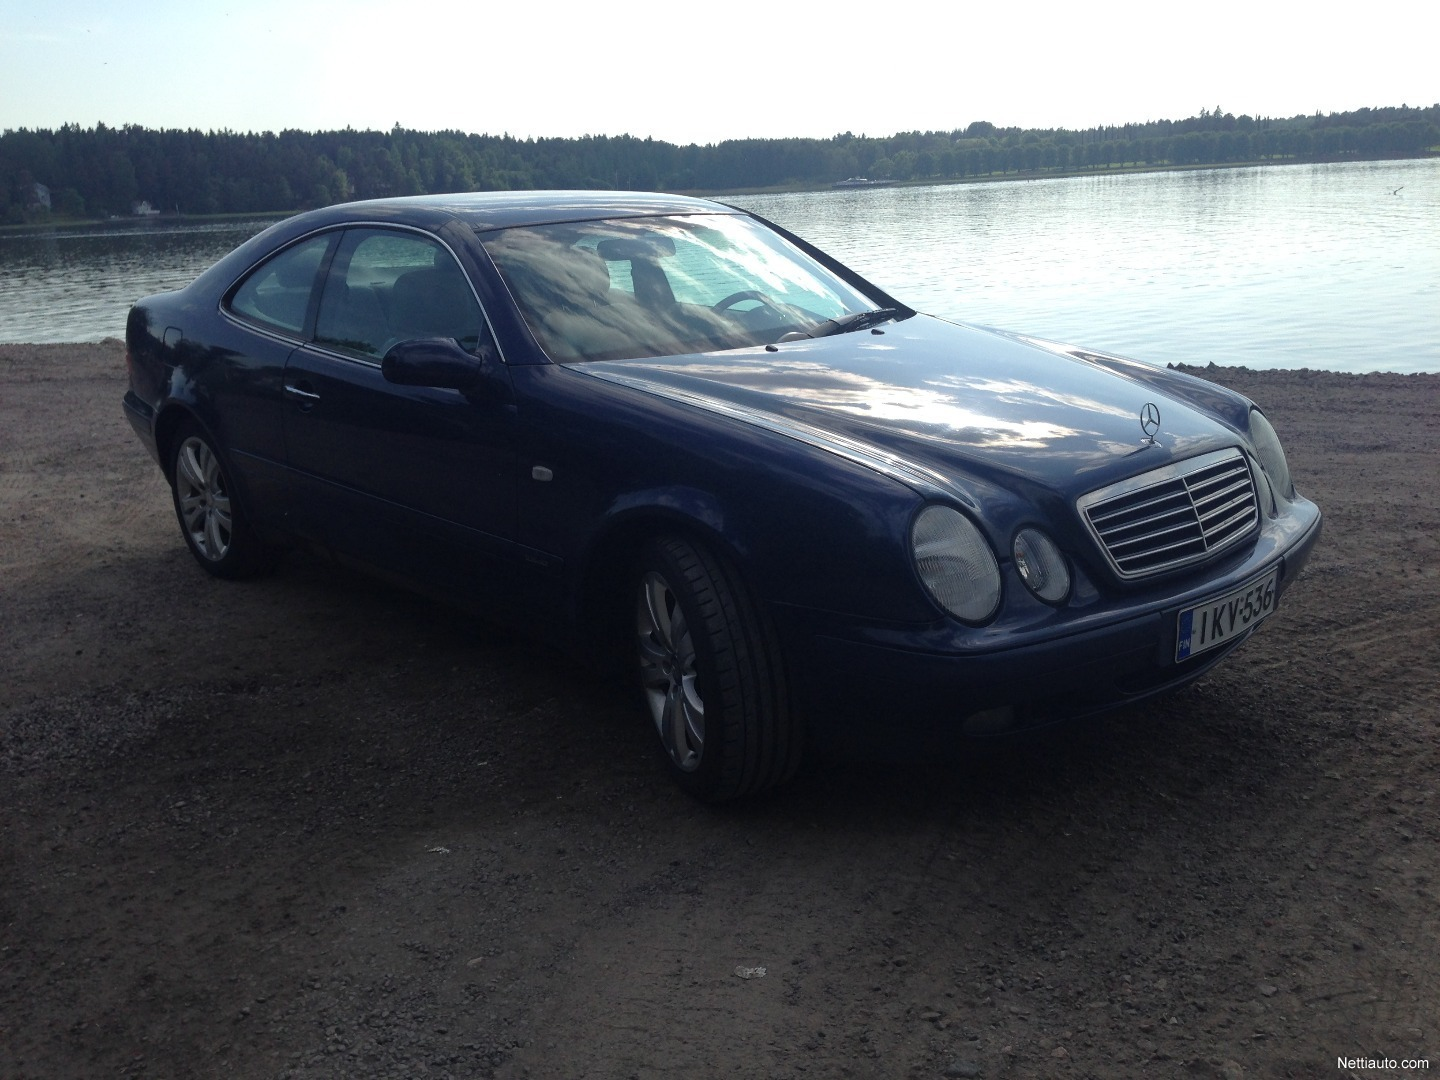 Mercedes benz clk 320 elegance 2d a coup 1999 used for 1999 mercedes benz clk 320 owners manual